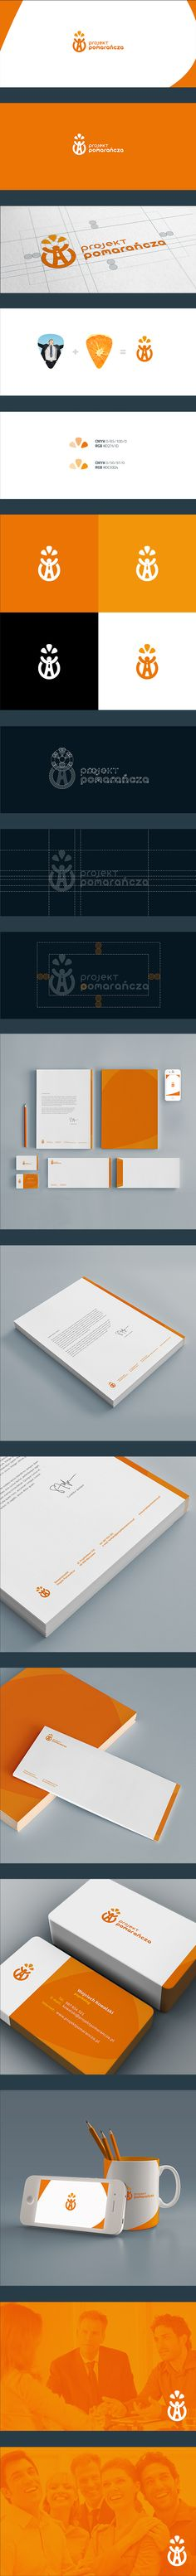 Project Orange identity | #stationary #corporate #design #corporatedesign #logo #identity #branding #marketing <<< repinned by an #advertising agency from #Hamburg / #Germany - www.BlickeDeeler.de